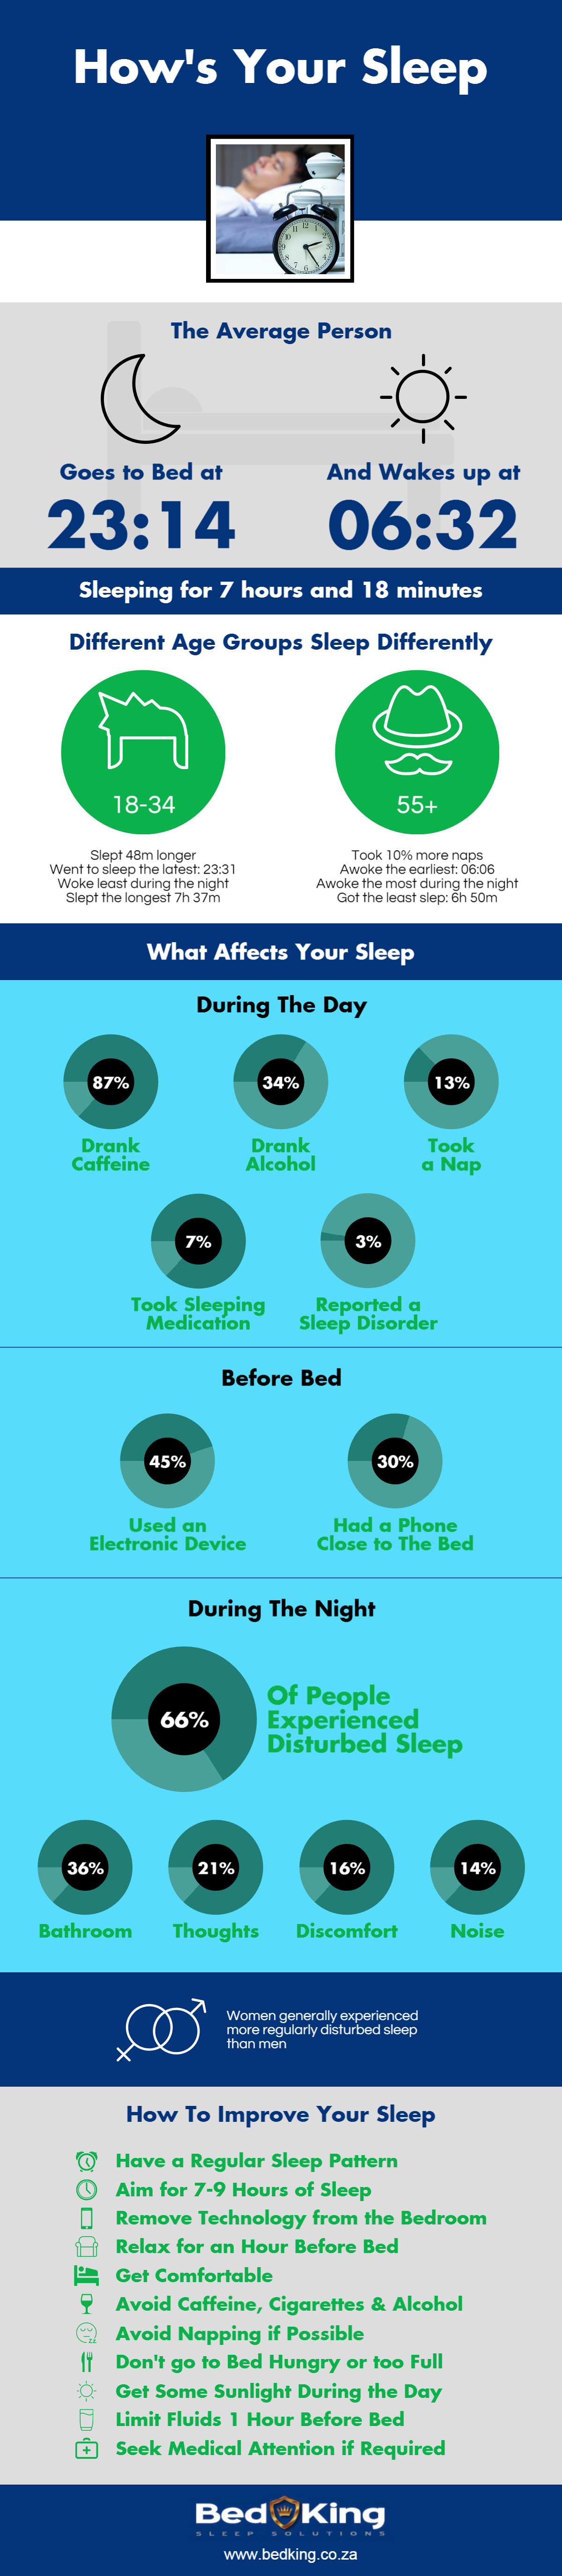 Sleep Infographic from The Bed King